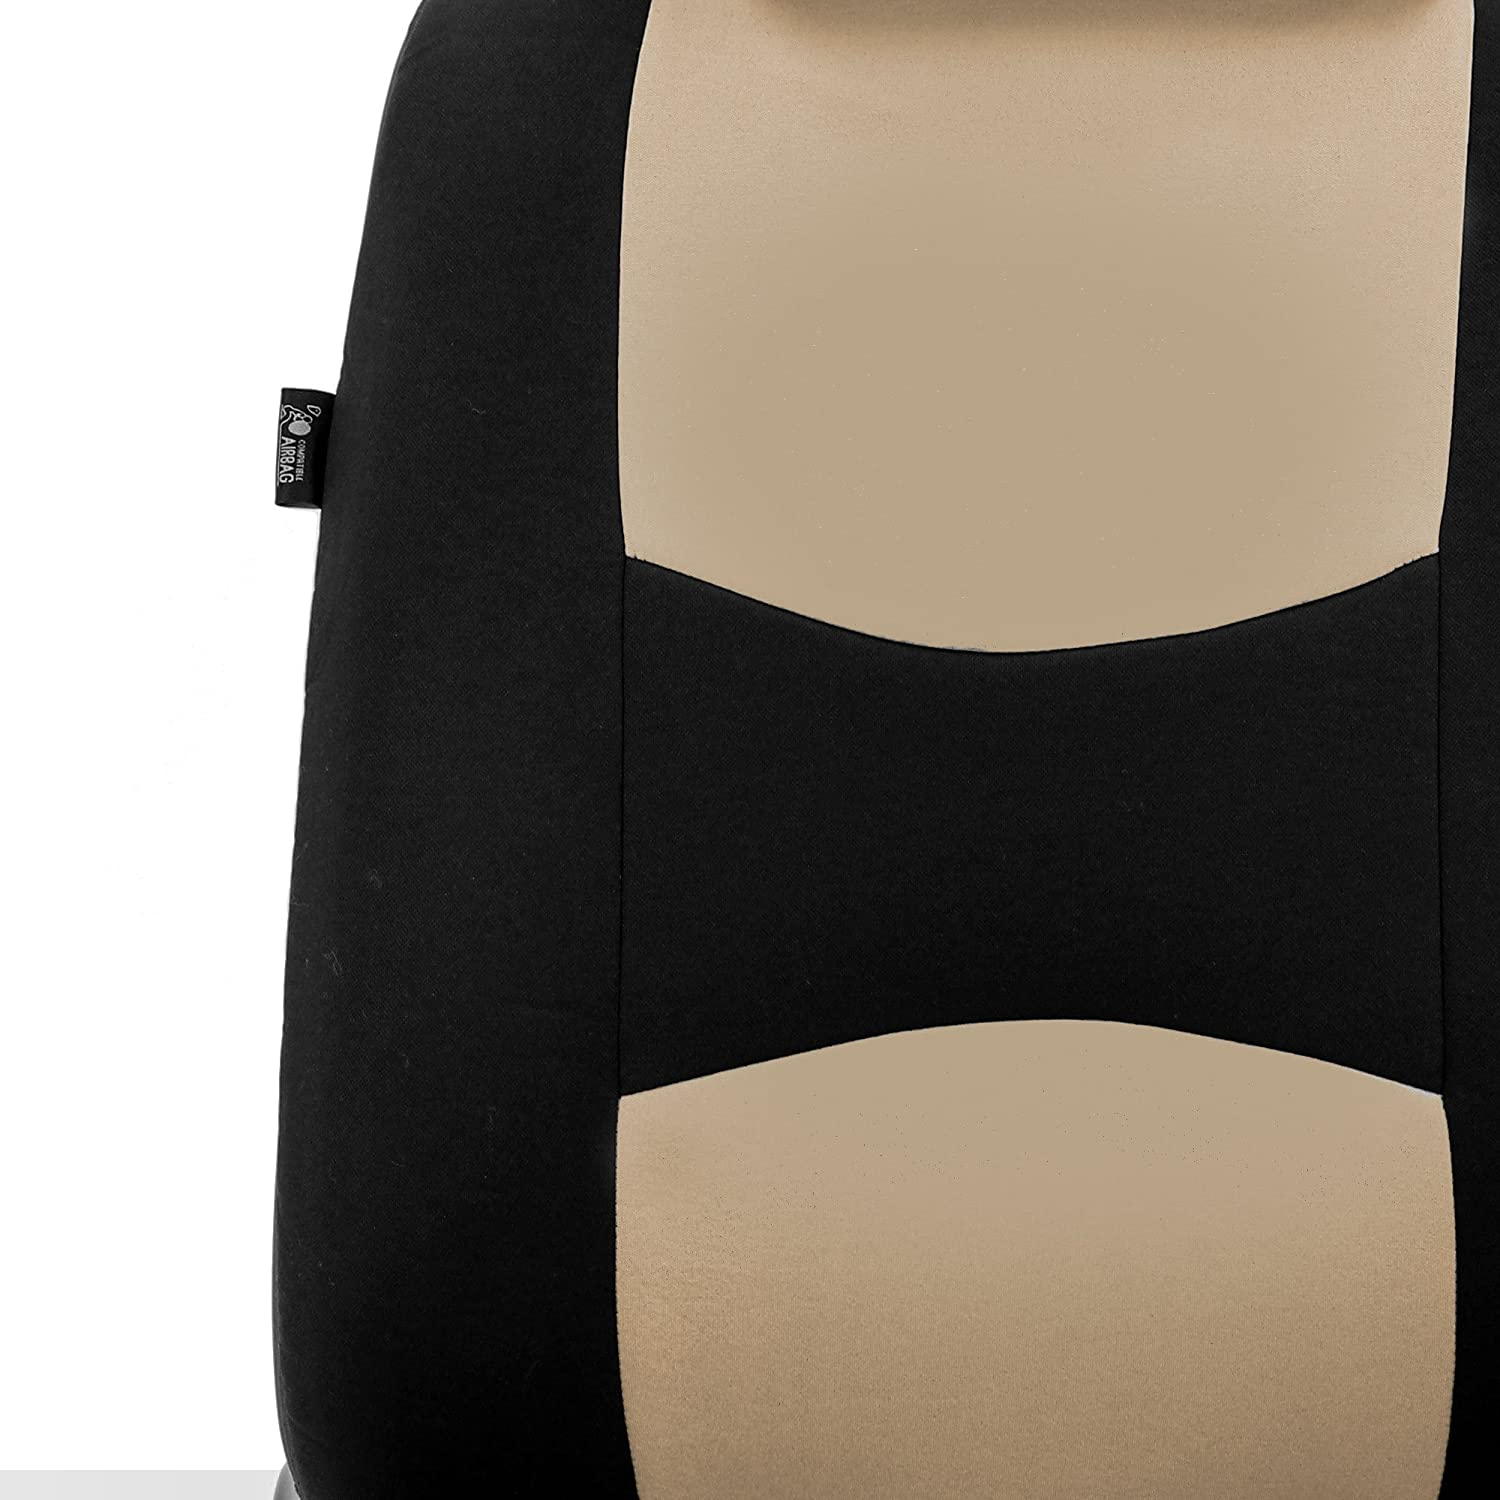 SUV Truck or Van FH Group FB351102 Pair Set All Purpose Flat Cloth Built-in Seat Belt Bucket Seat Covers Beige//Black- Fit Most Car